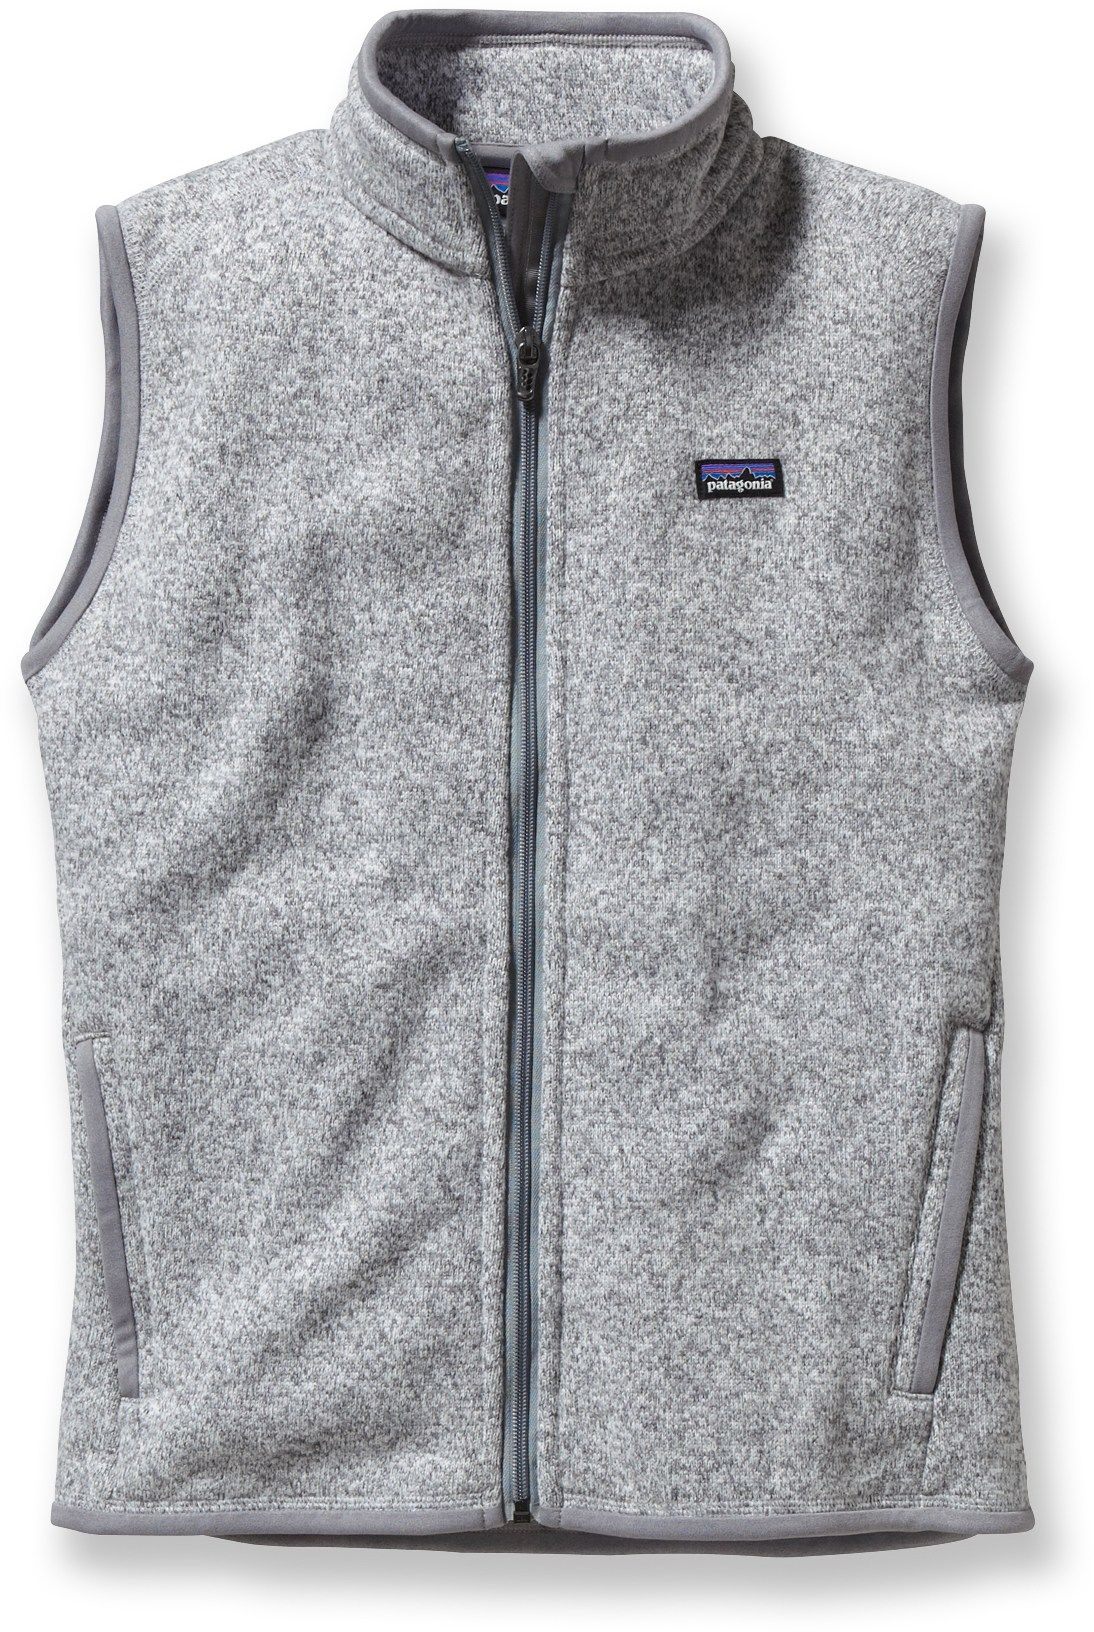 Patagonia Better Sweater Vest Women S Rei Co Op Patagonia